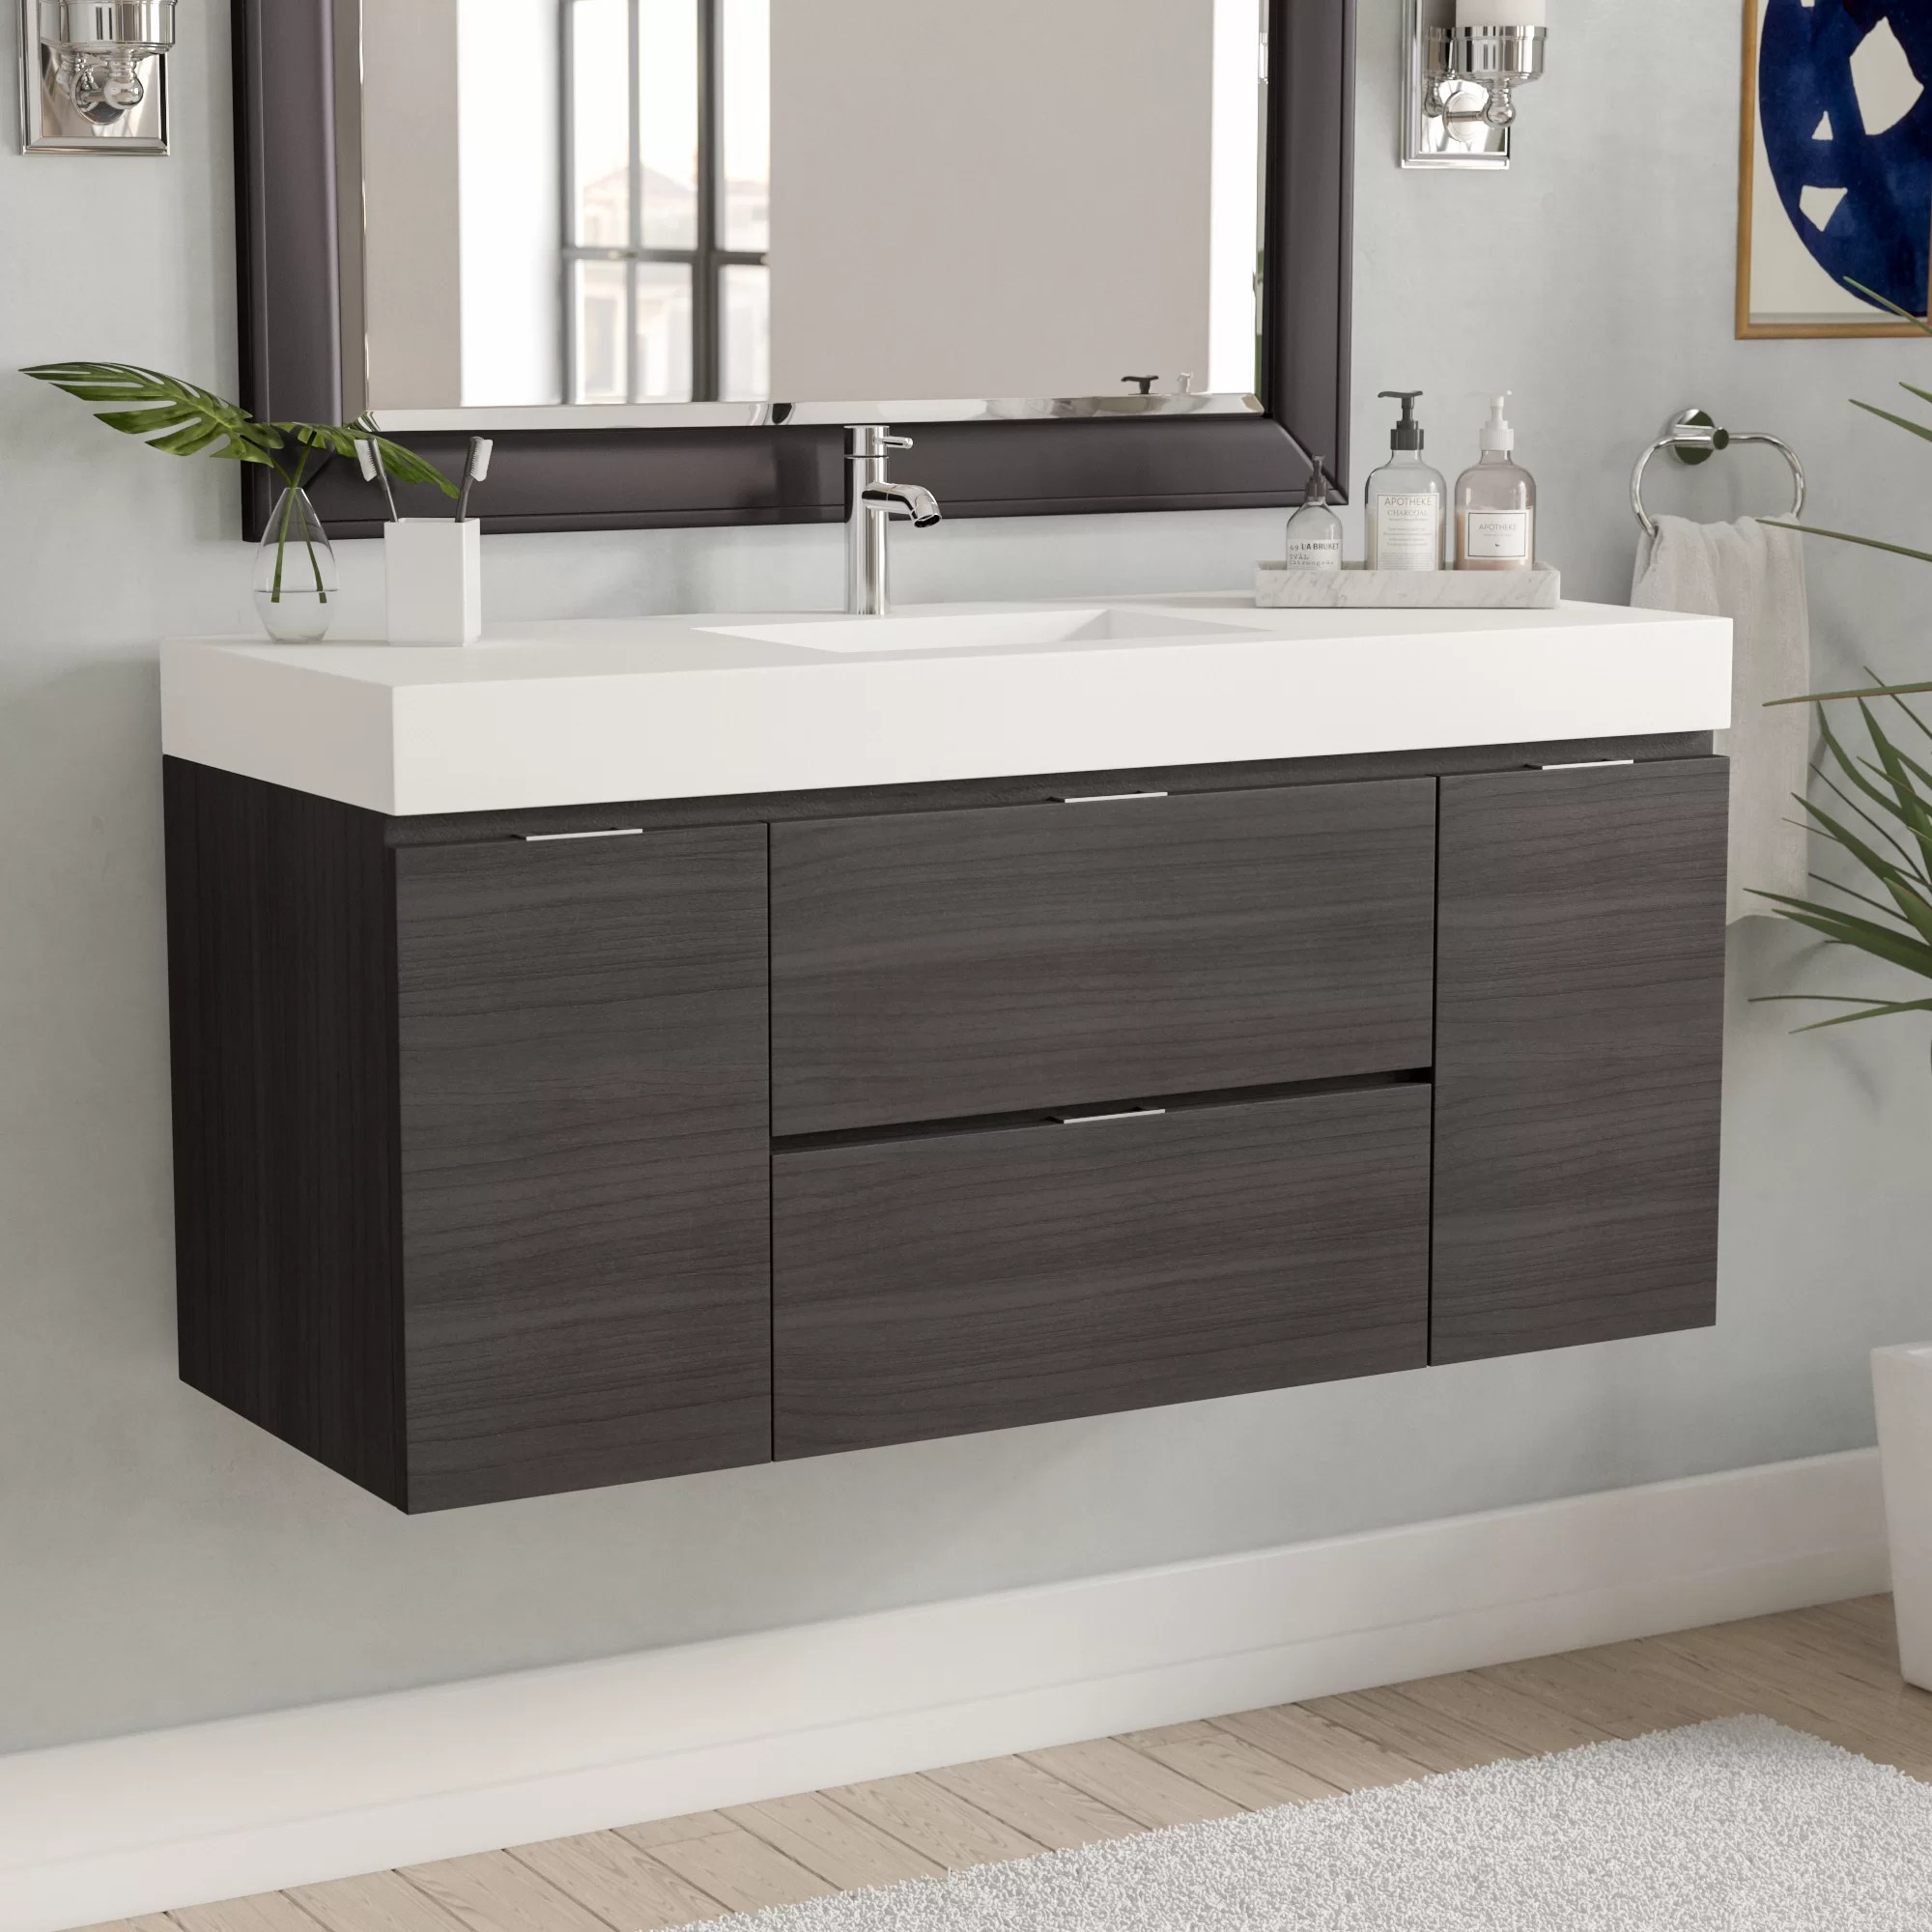 Vanities Bathroom Tenafly 48 Single Wall Mount Modern Bathroom Vanity Set